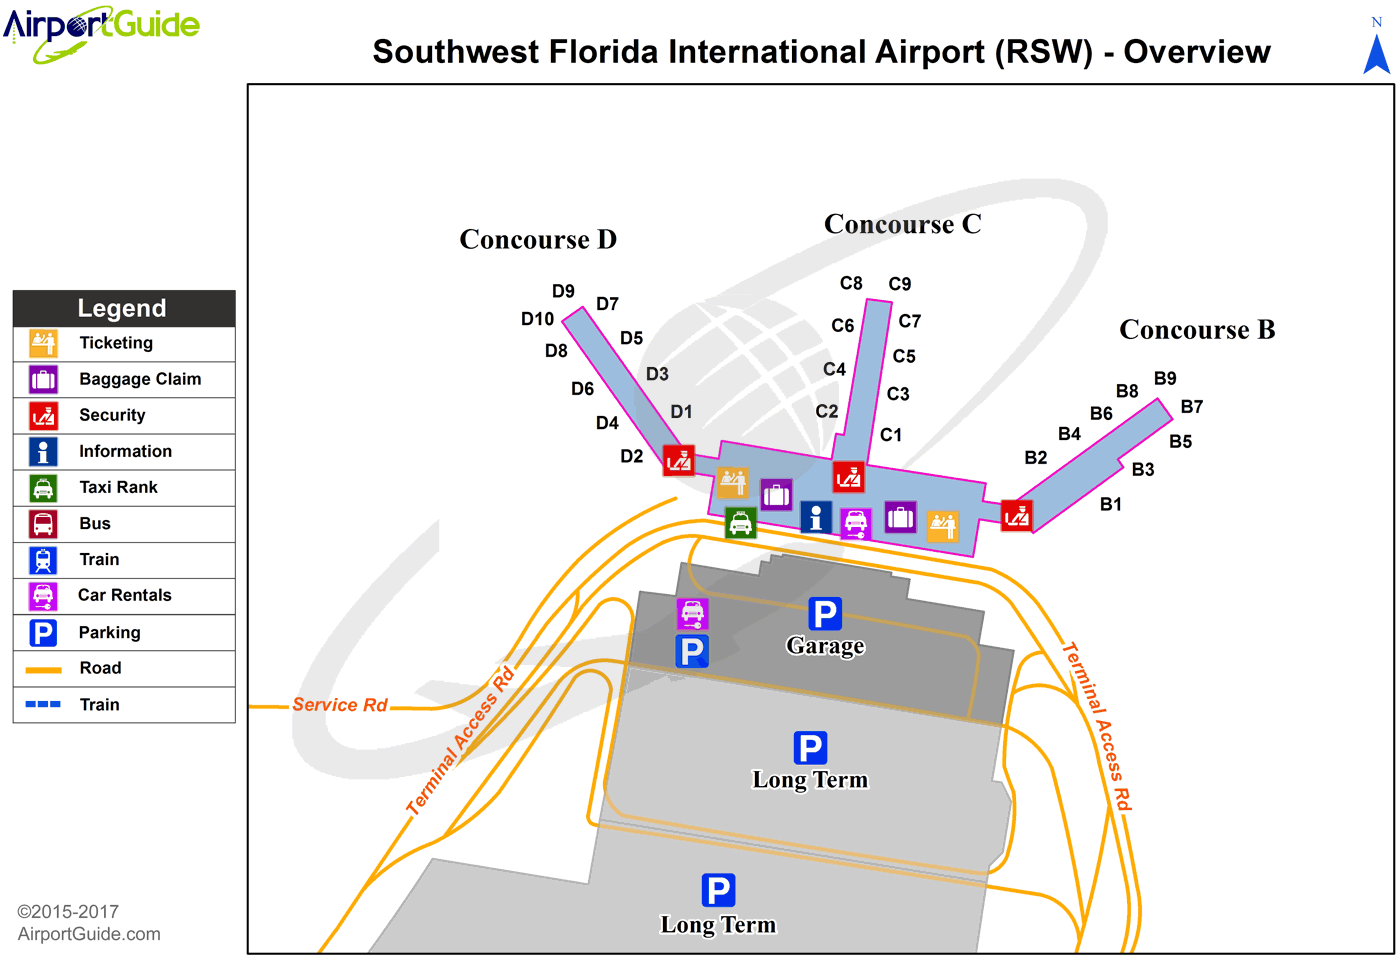 Fort Myers - Southwest Florida International (RSW) Airport Terminal Map - Overview